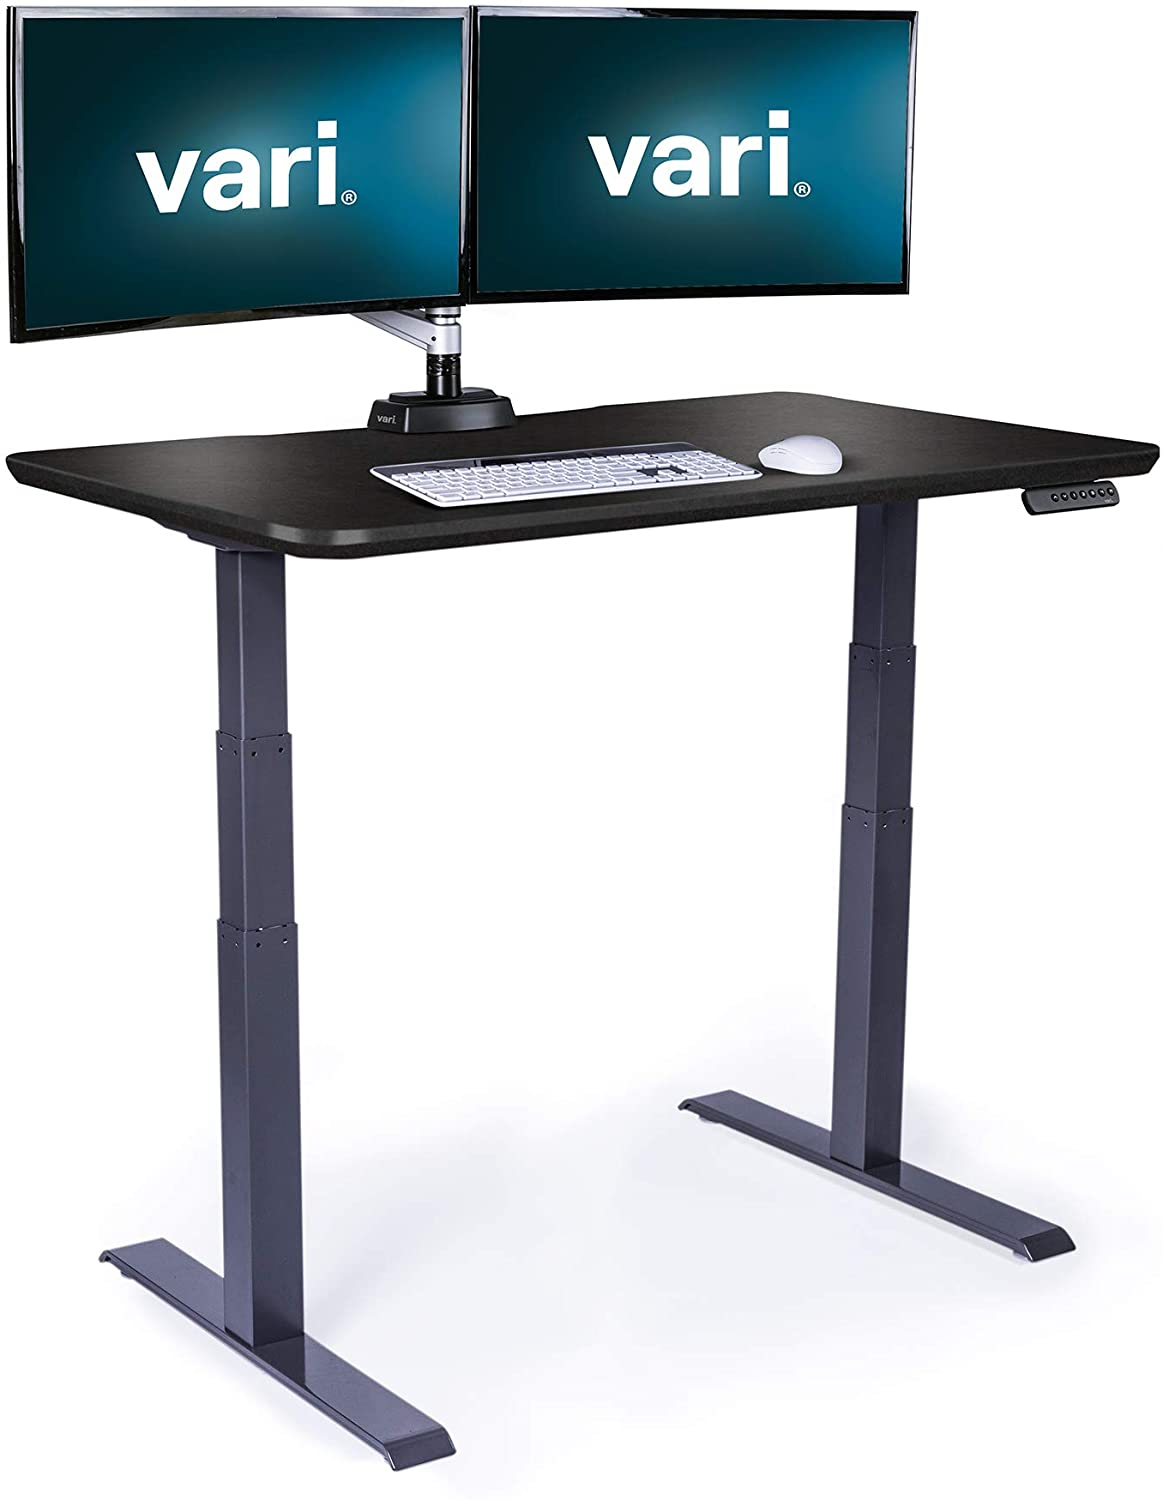 Vari Electric Standing Desk 48 - Sit to Stand Desk - Push Button Memory Settings